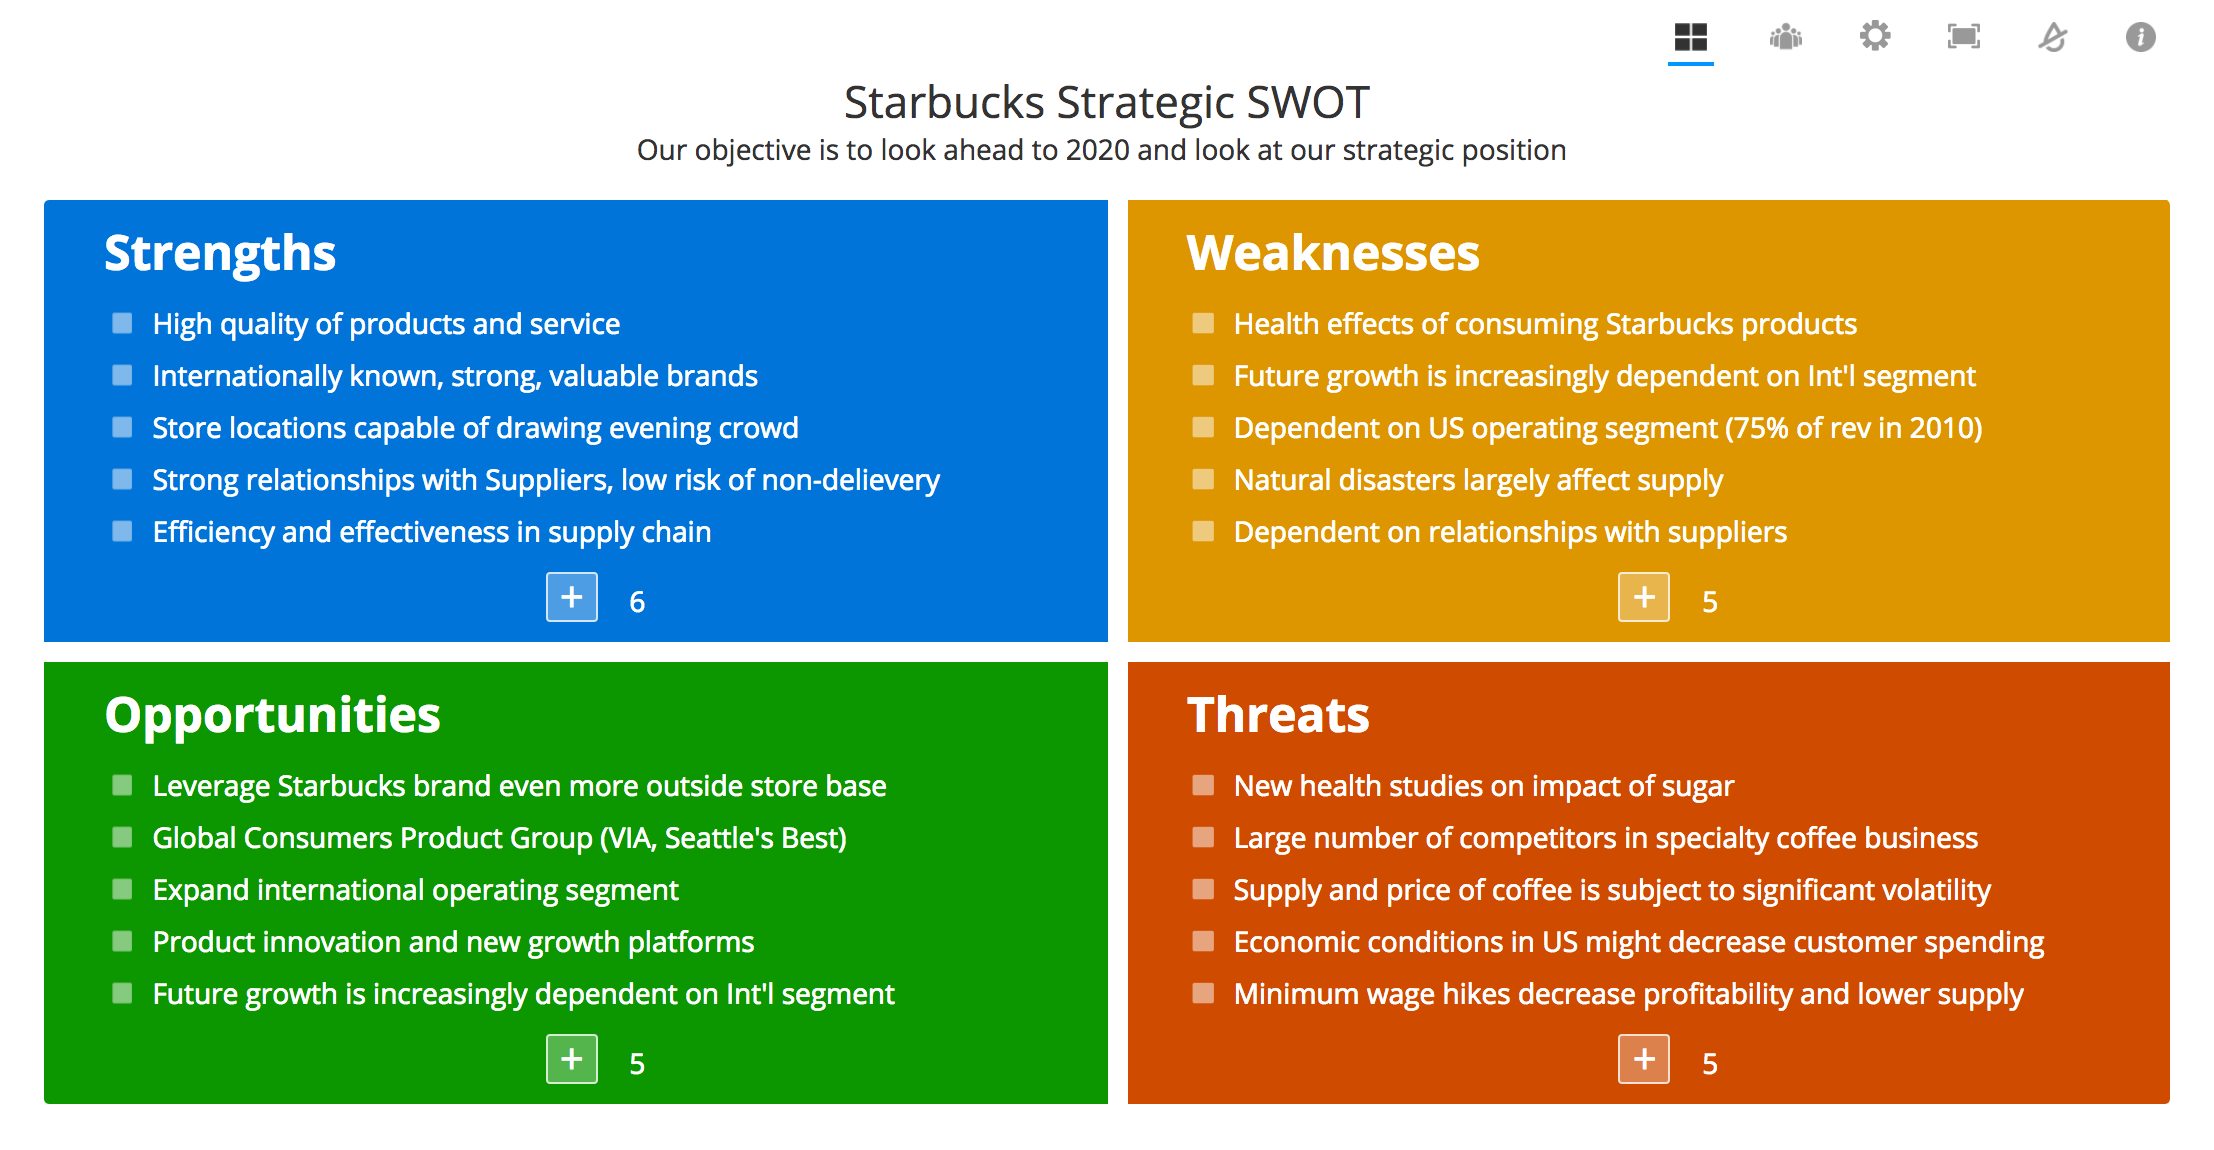 swot anlaysis on philippine economy The article presents an analysis of the strengths, weaknesses, opportunities and threats (swot) in the fields of security, defence, political, economic and business environment for the philippines as of 2nd quarter 2012.